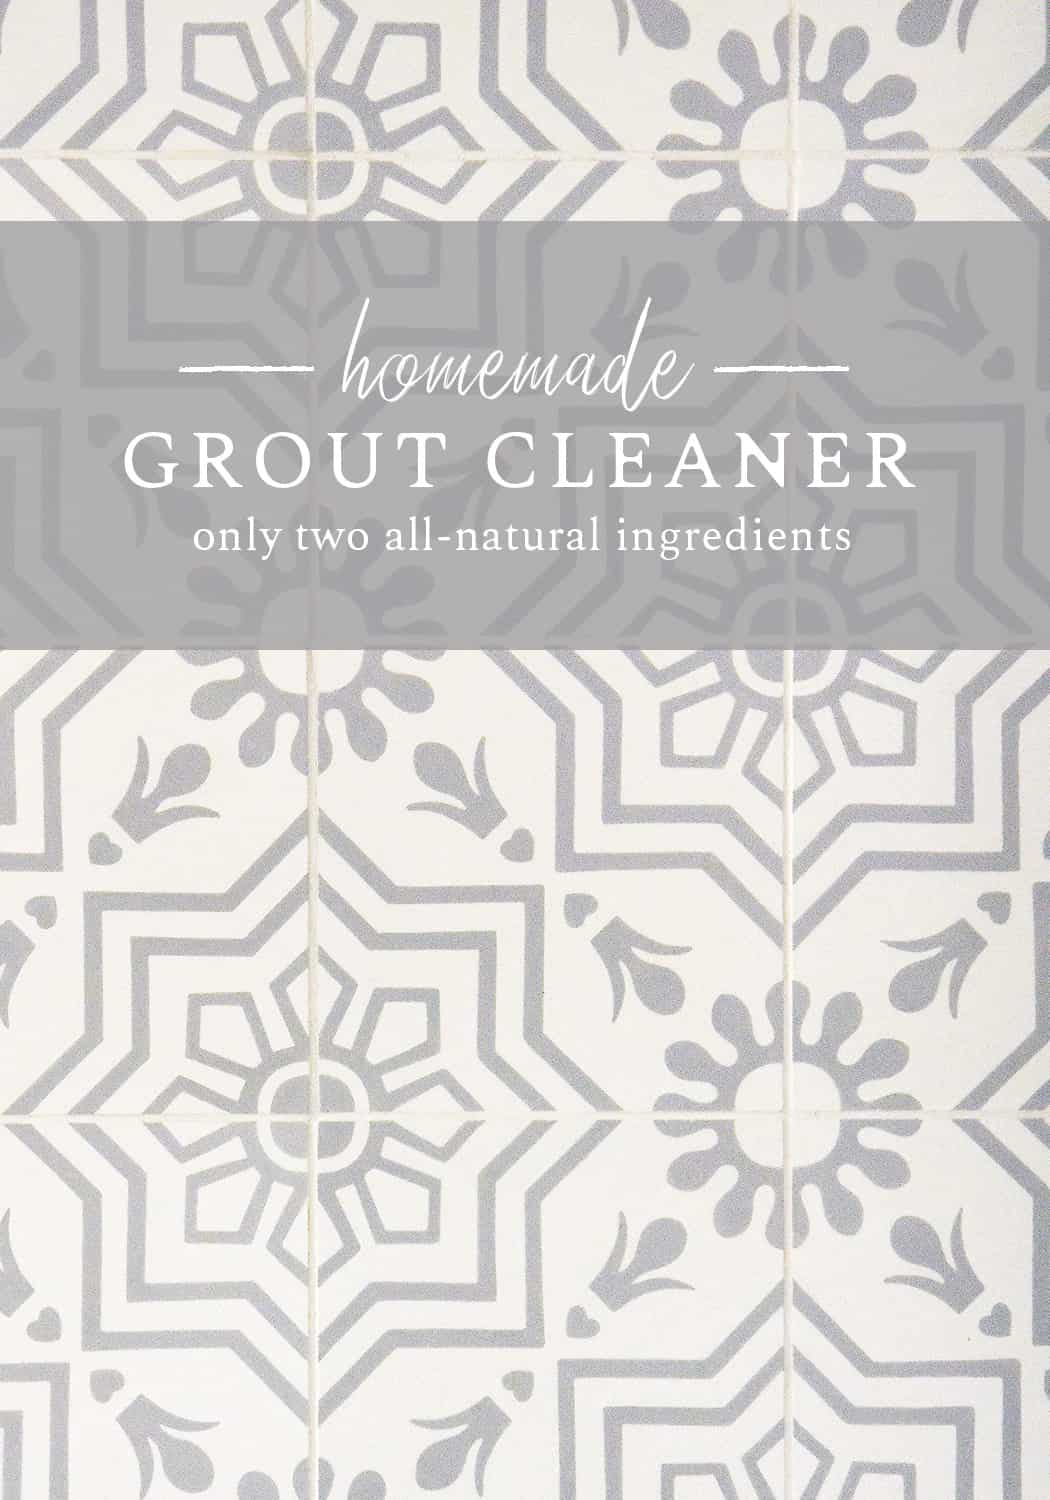 Make your own homemade grout cleaner with just two all-natural ingredients! This simple grout cleaner is amazing for white grout and to clean dirty tile floors naturally!